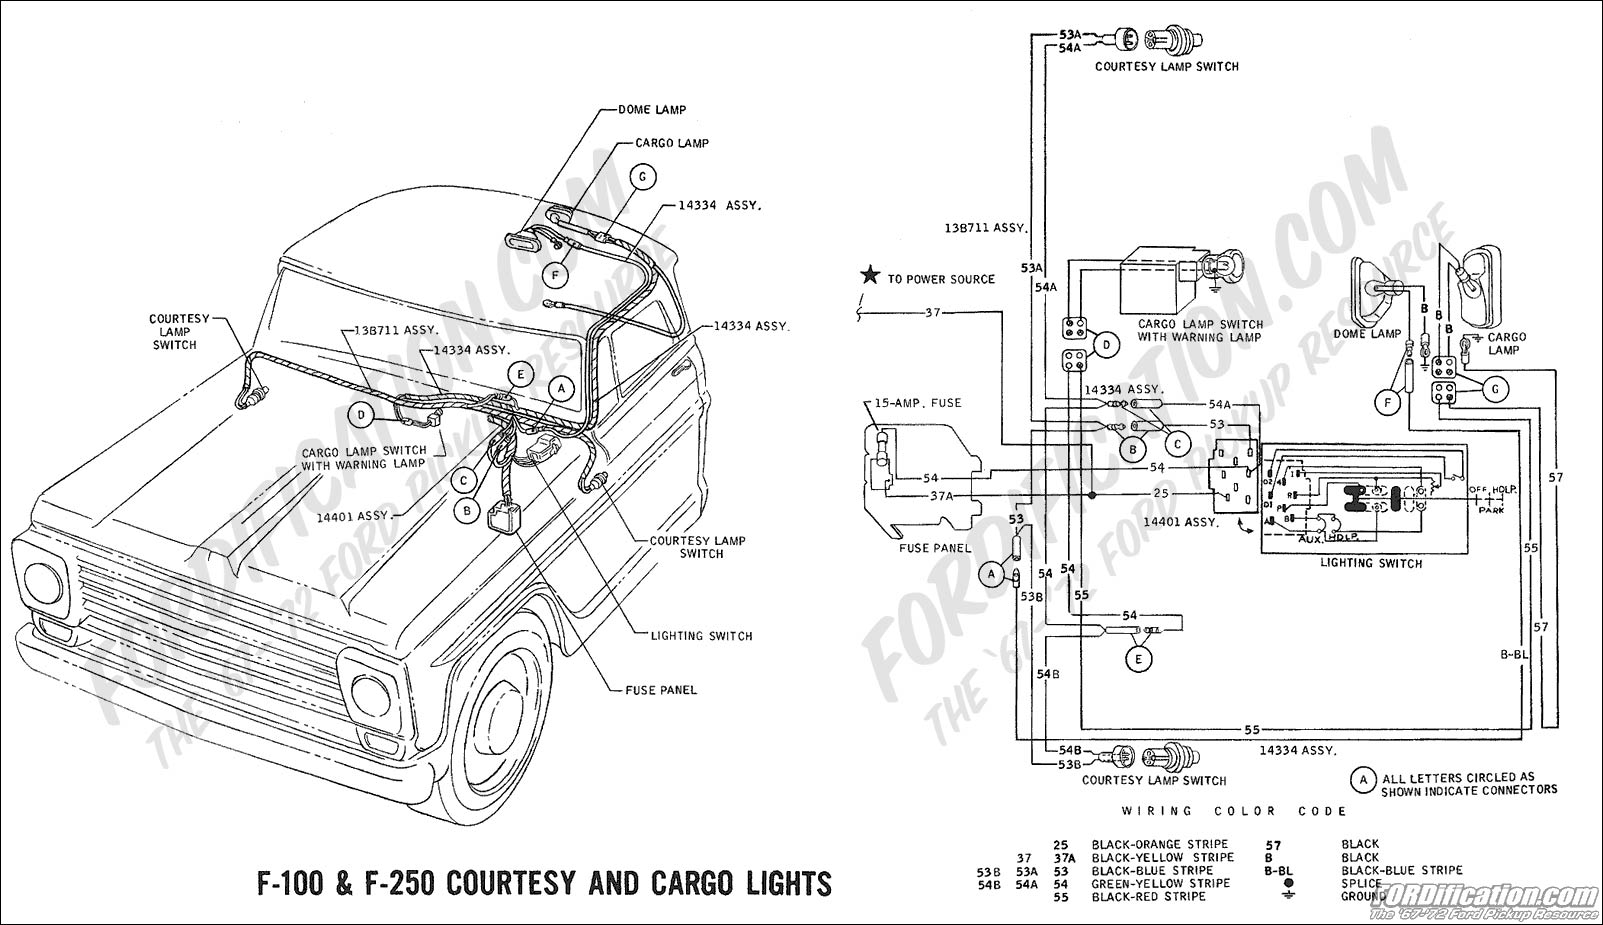 ford truck technical drawings and schematics section h wiring rh fordification com 1985 Ford Truck Wiring Diagram 2001 Ford Truck Wiring Diagrams